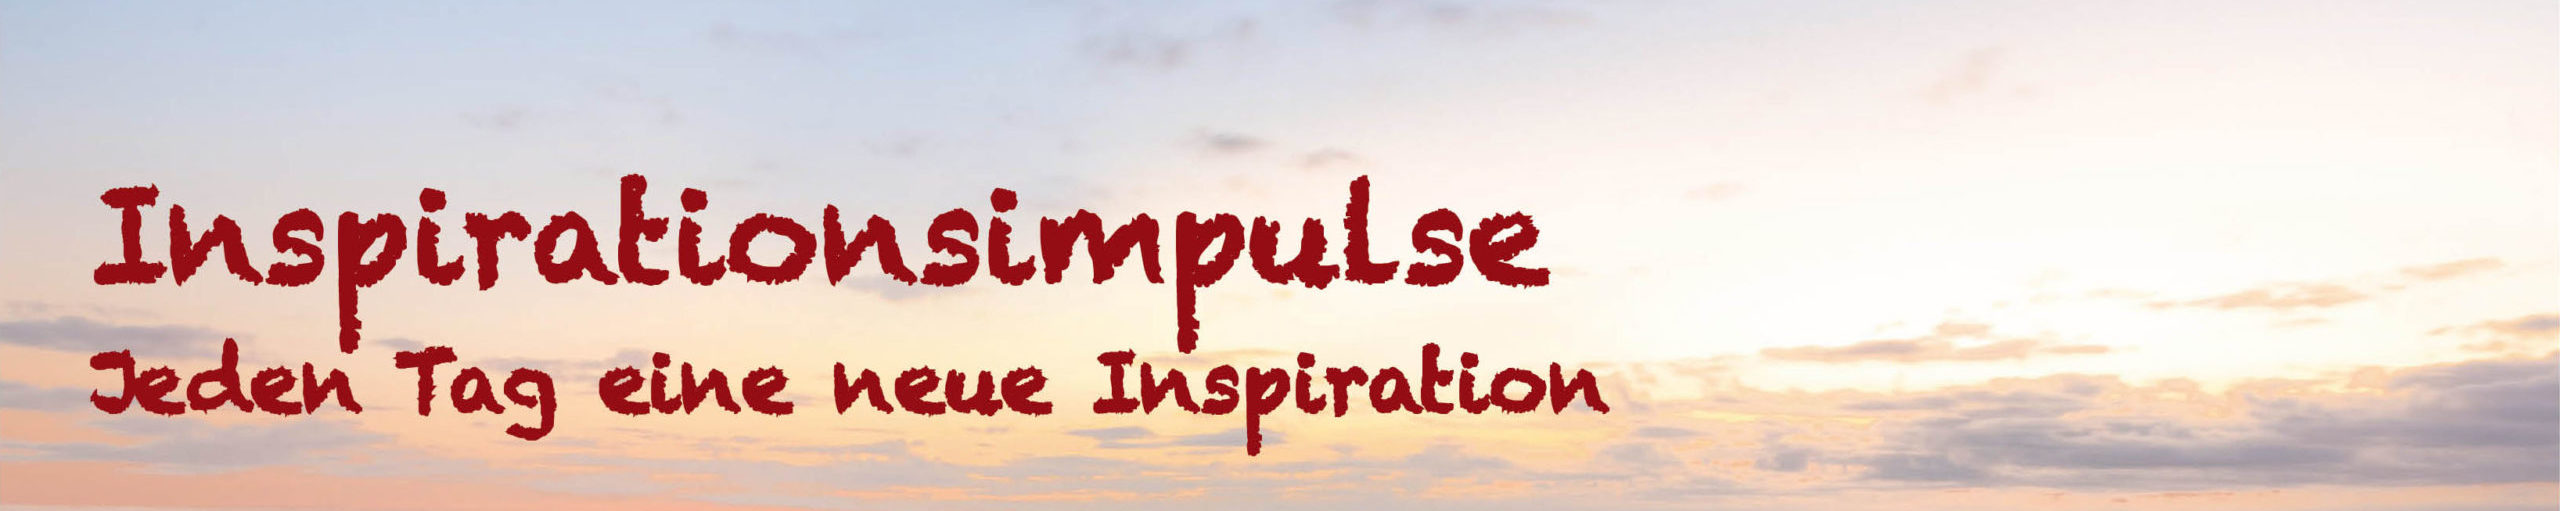 inspirationsimpulse.de